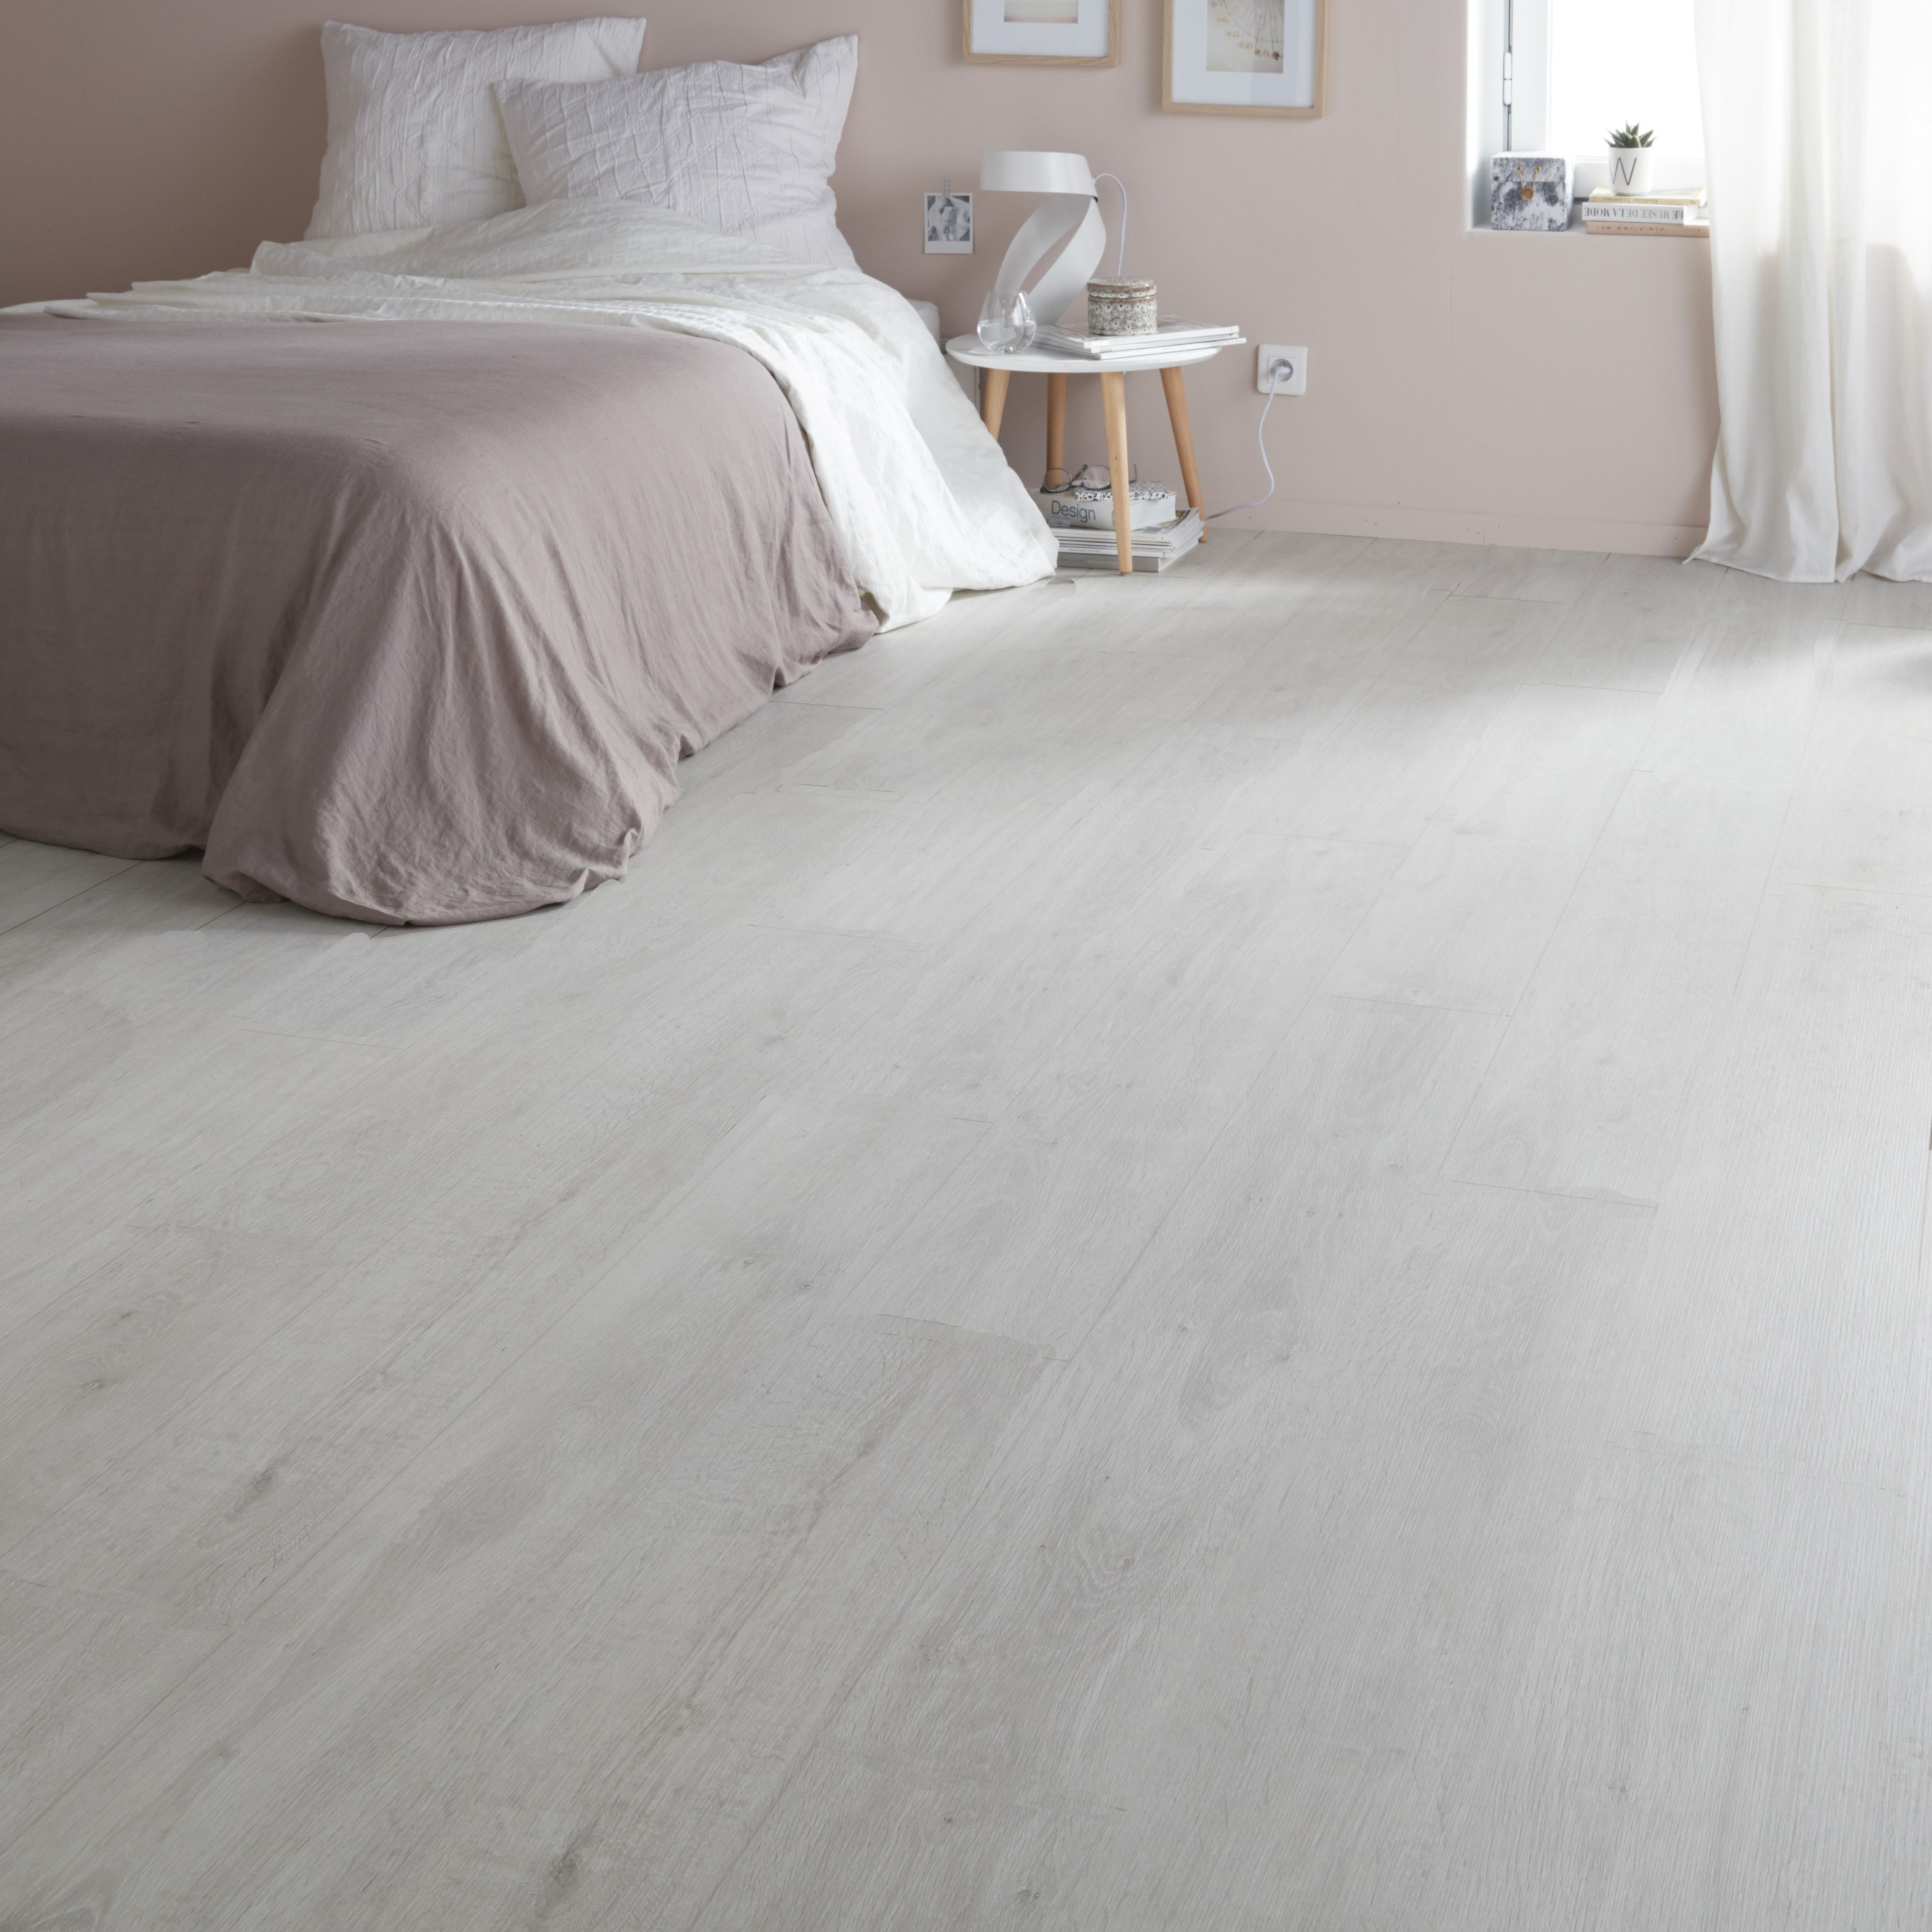 Wood Floor With Wood Furniture